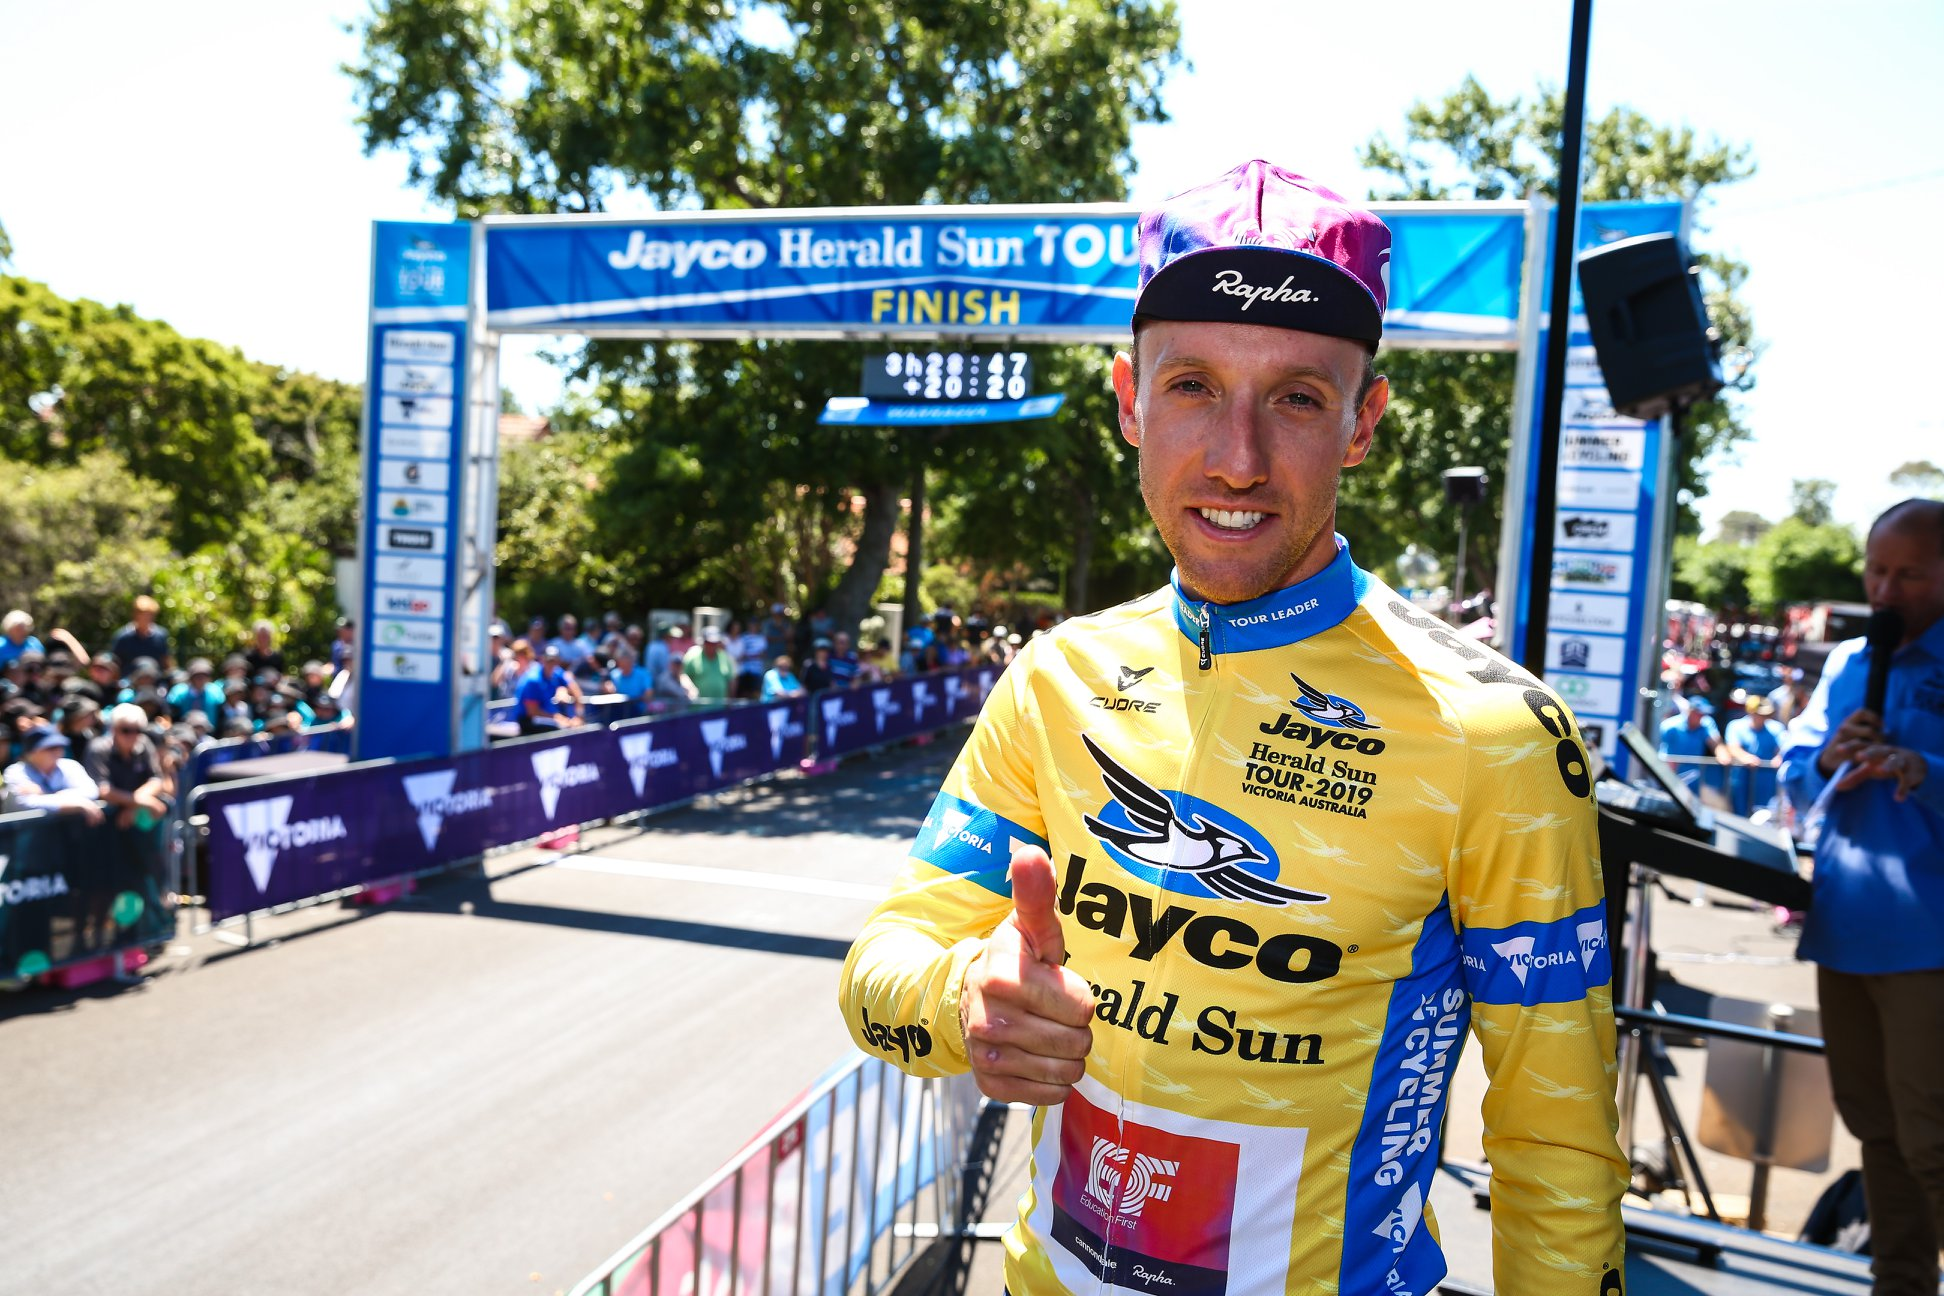 EvoPro Racing just scuppered by Team Sky in Herald Sun Tour - Sticky ... 92d4af505